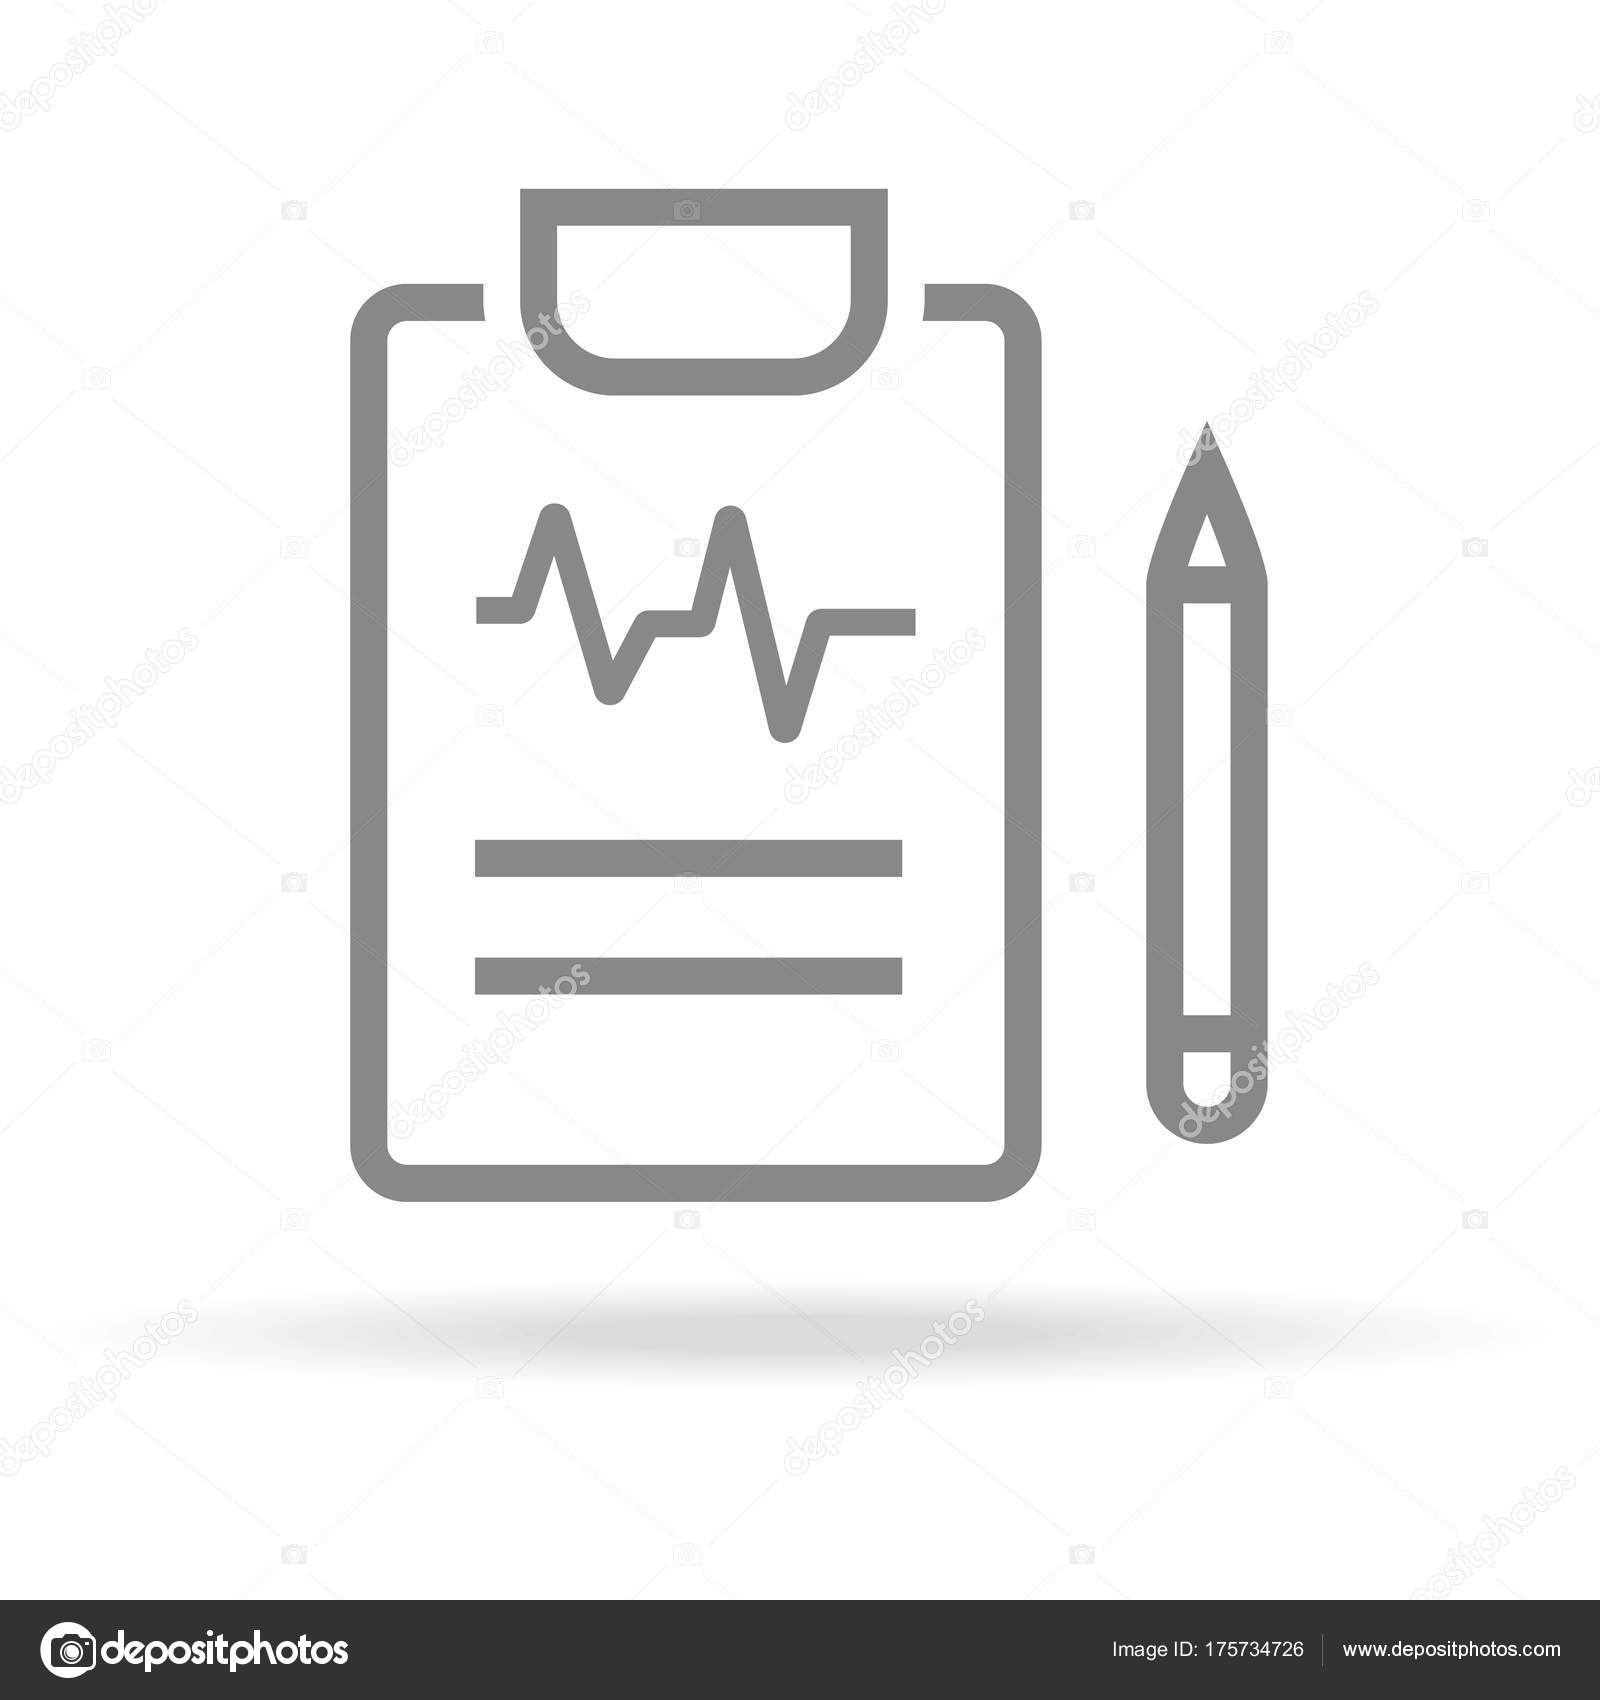 Diagnostic Medical Research Icon In Trendy Thin Line Style Isolated